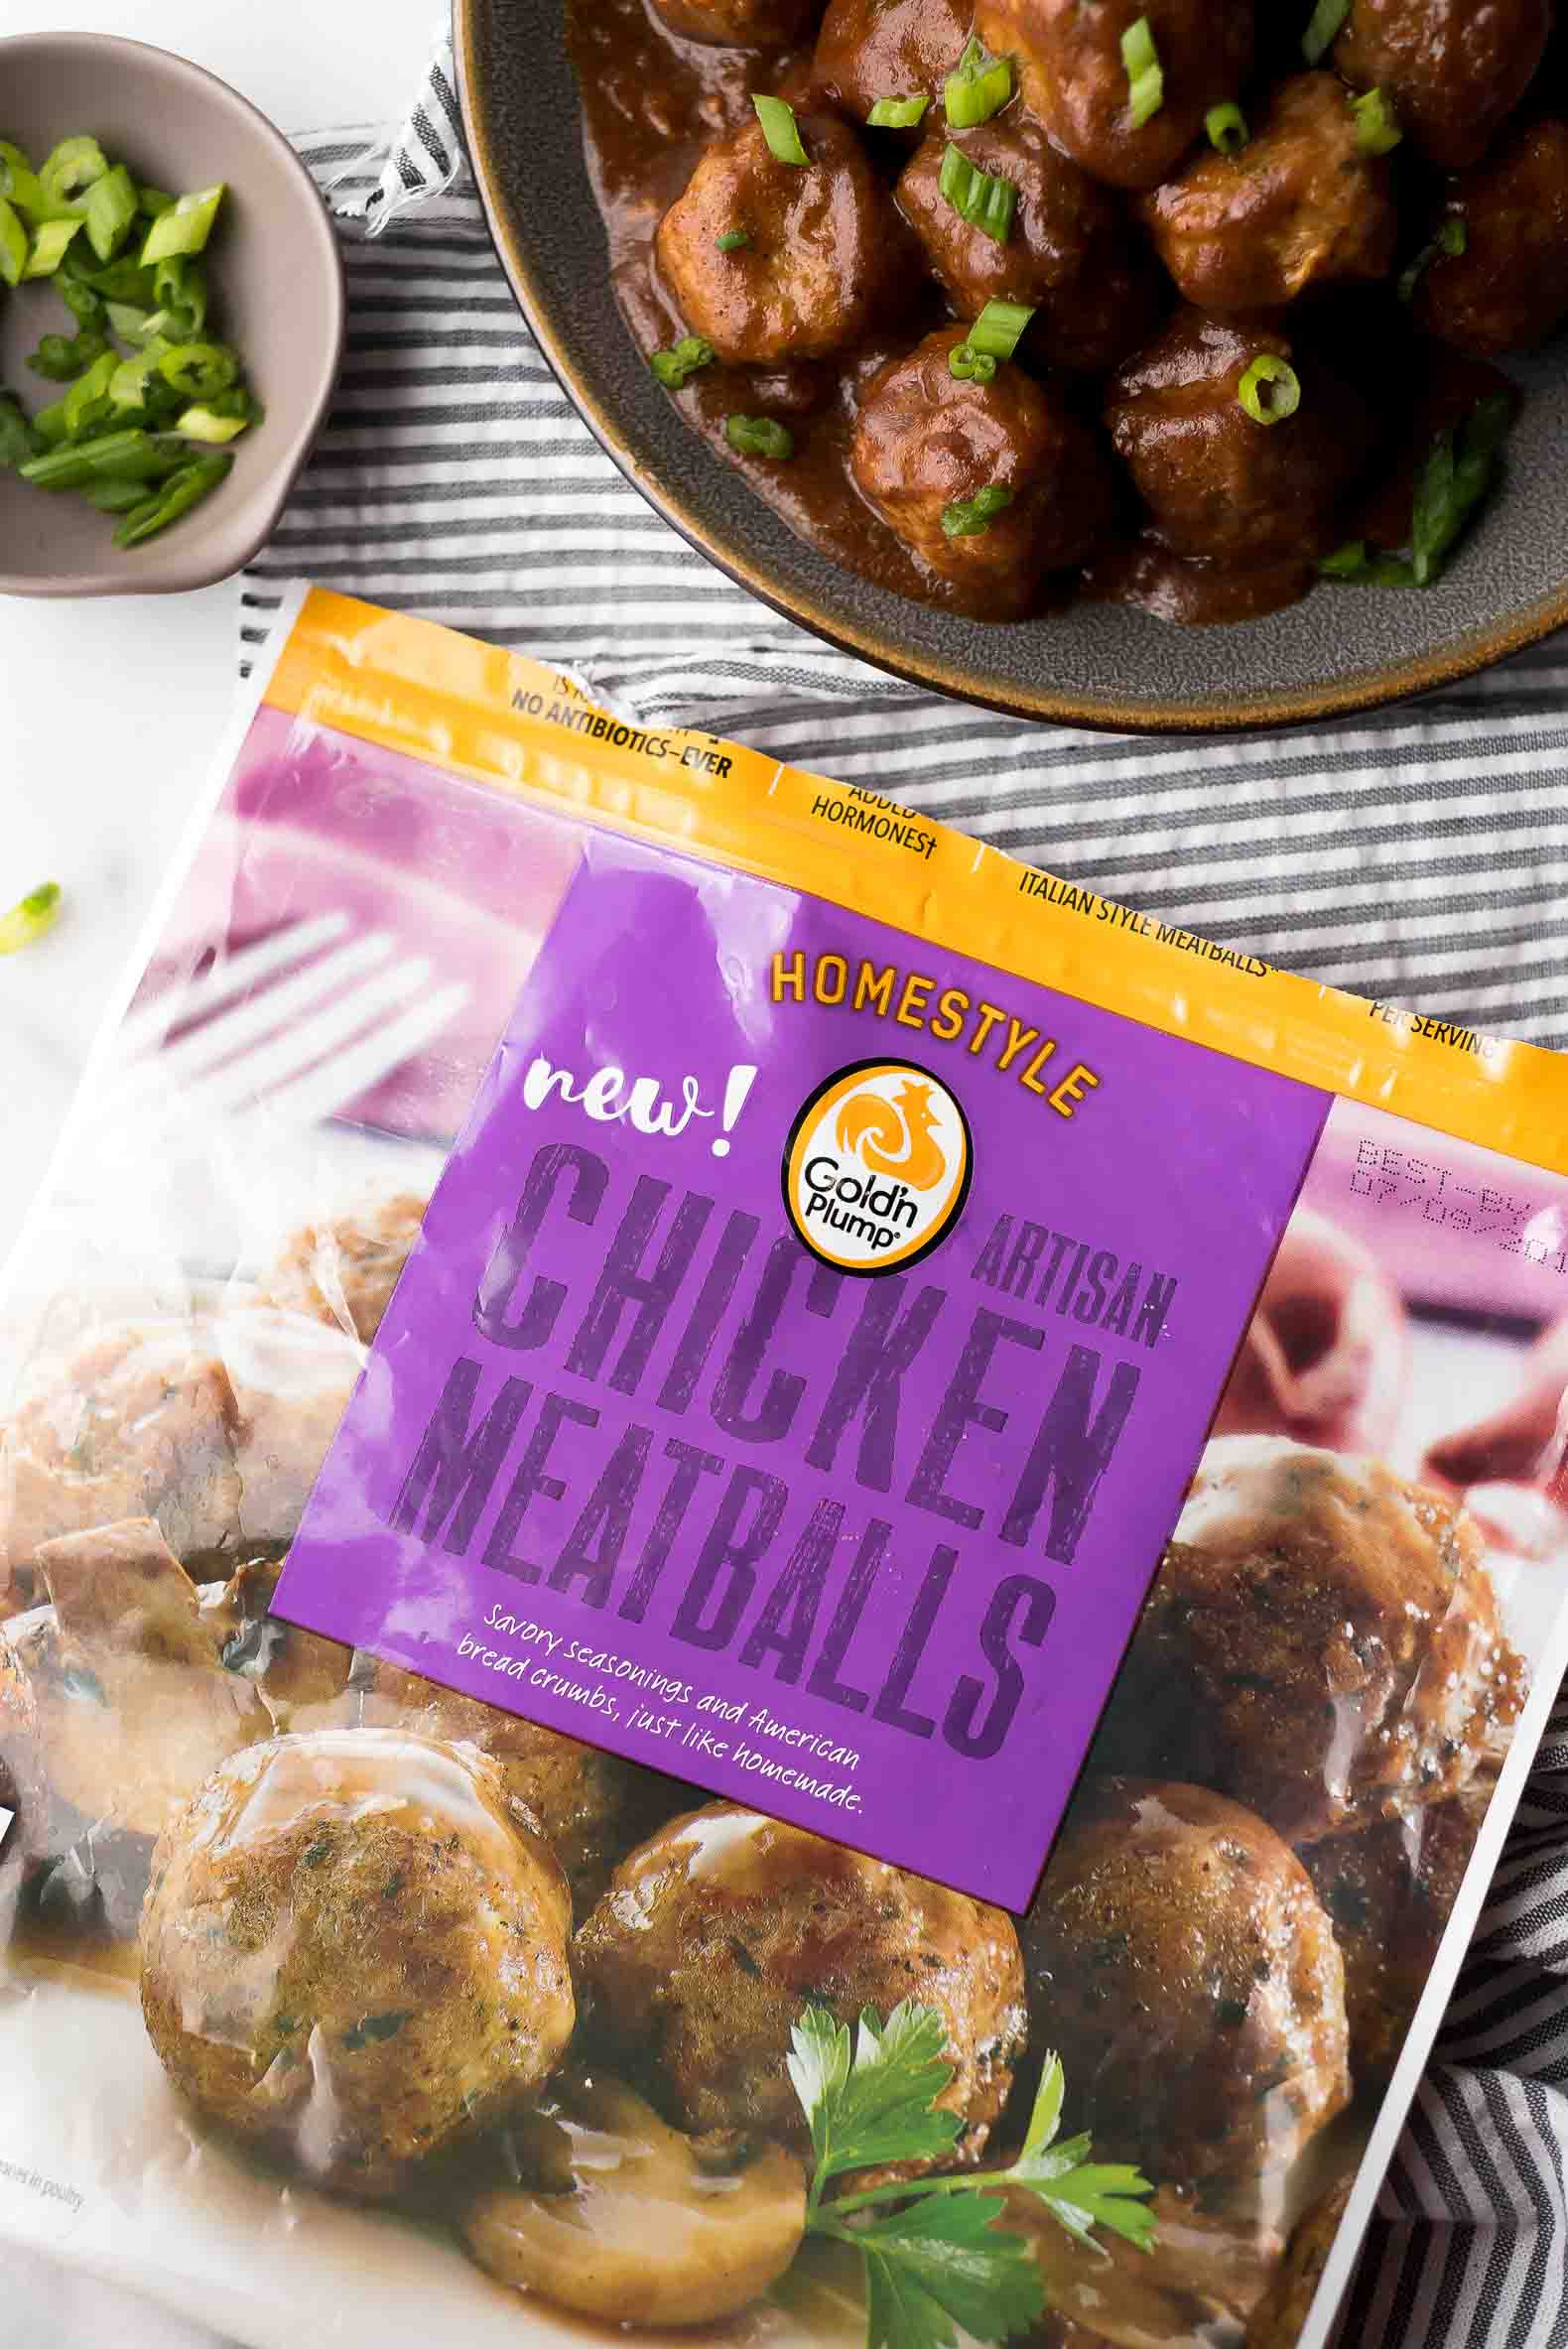 Slow Cooker Meatballs, Easy, Appetizers, Frozen, Healthy, Recipes, Best, Party, Crock Pots, Honey, Chicken, Spicy, Low Carb, Clean, Cocktail